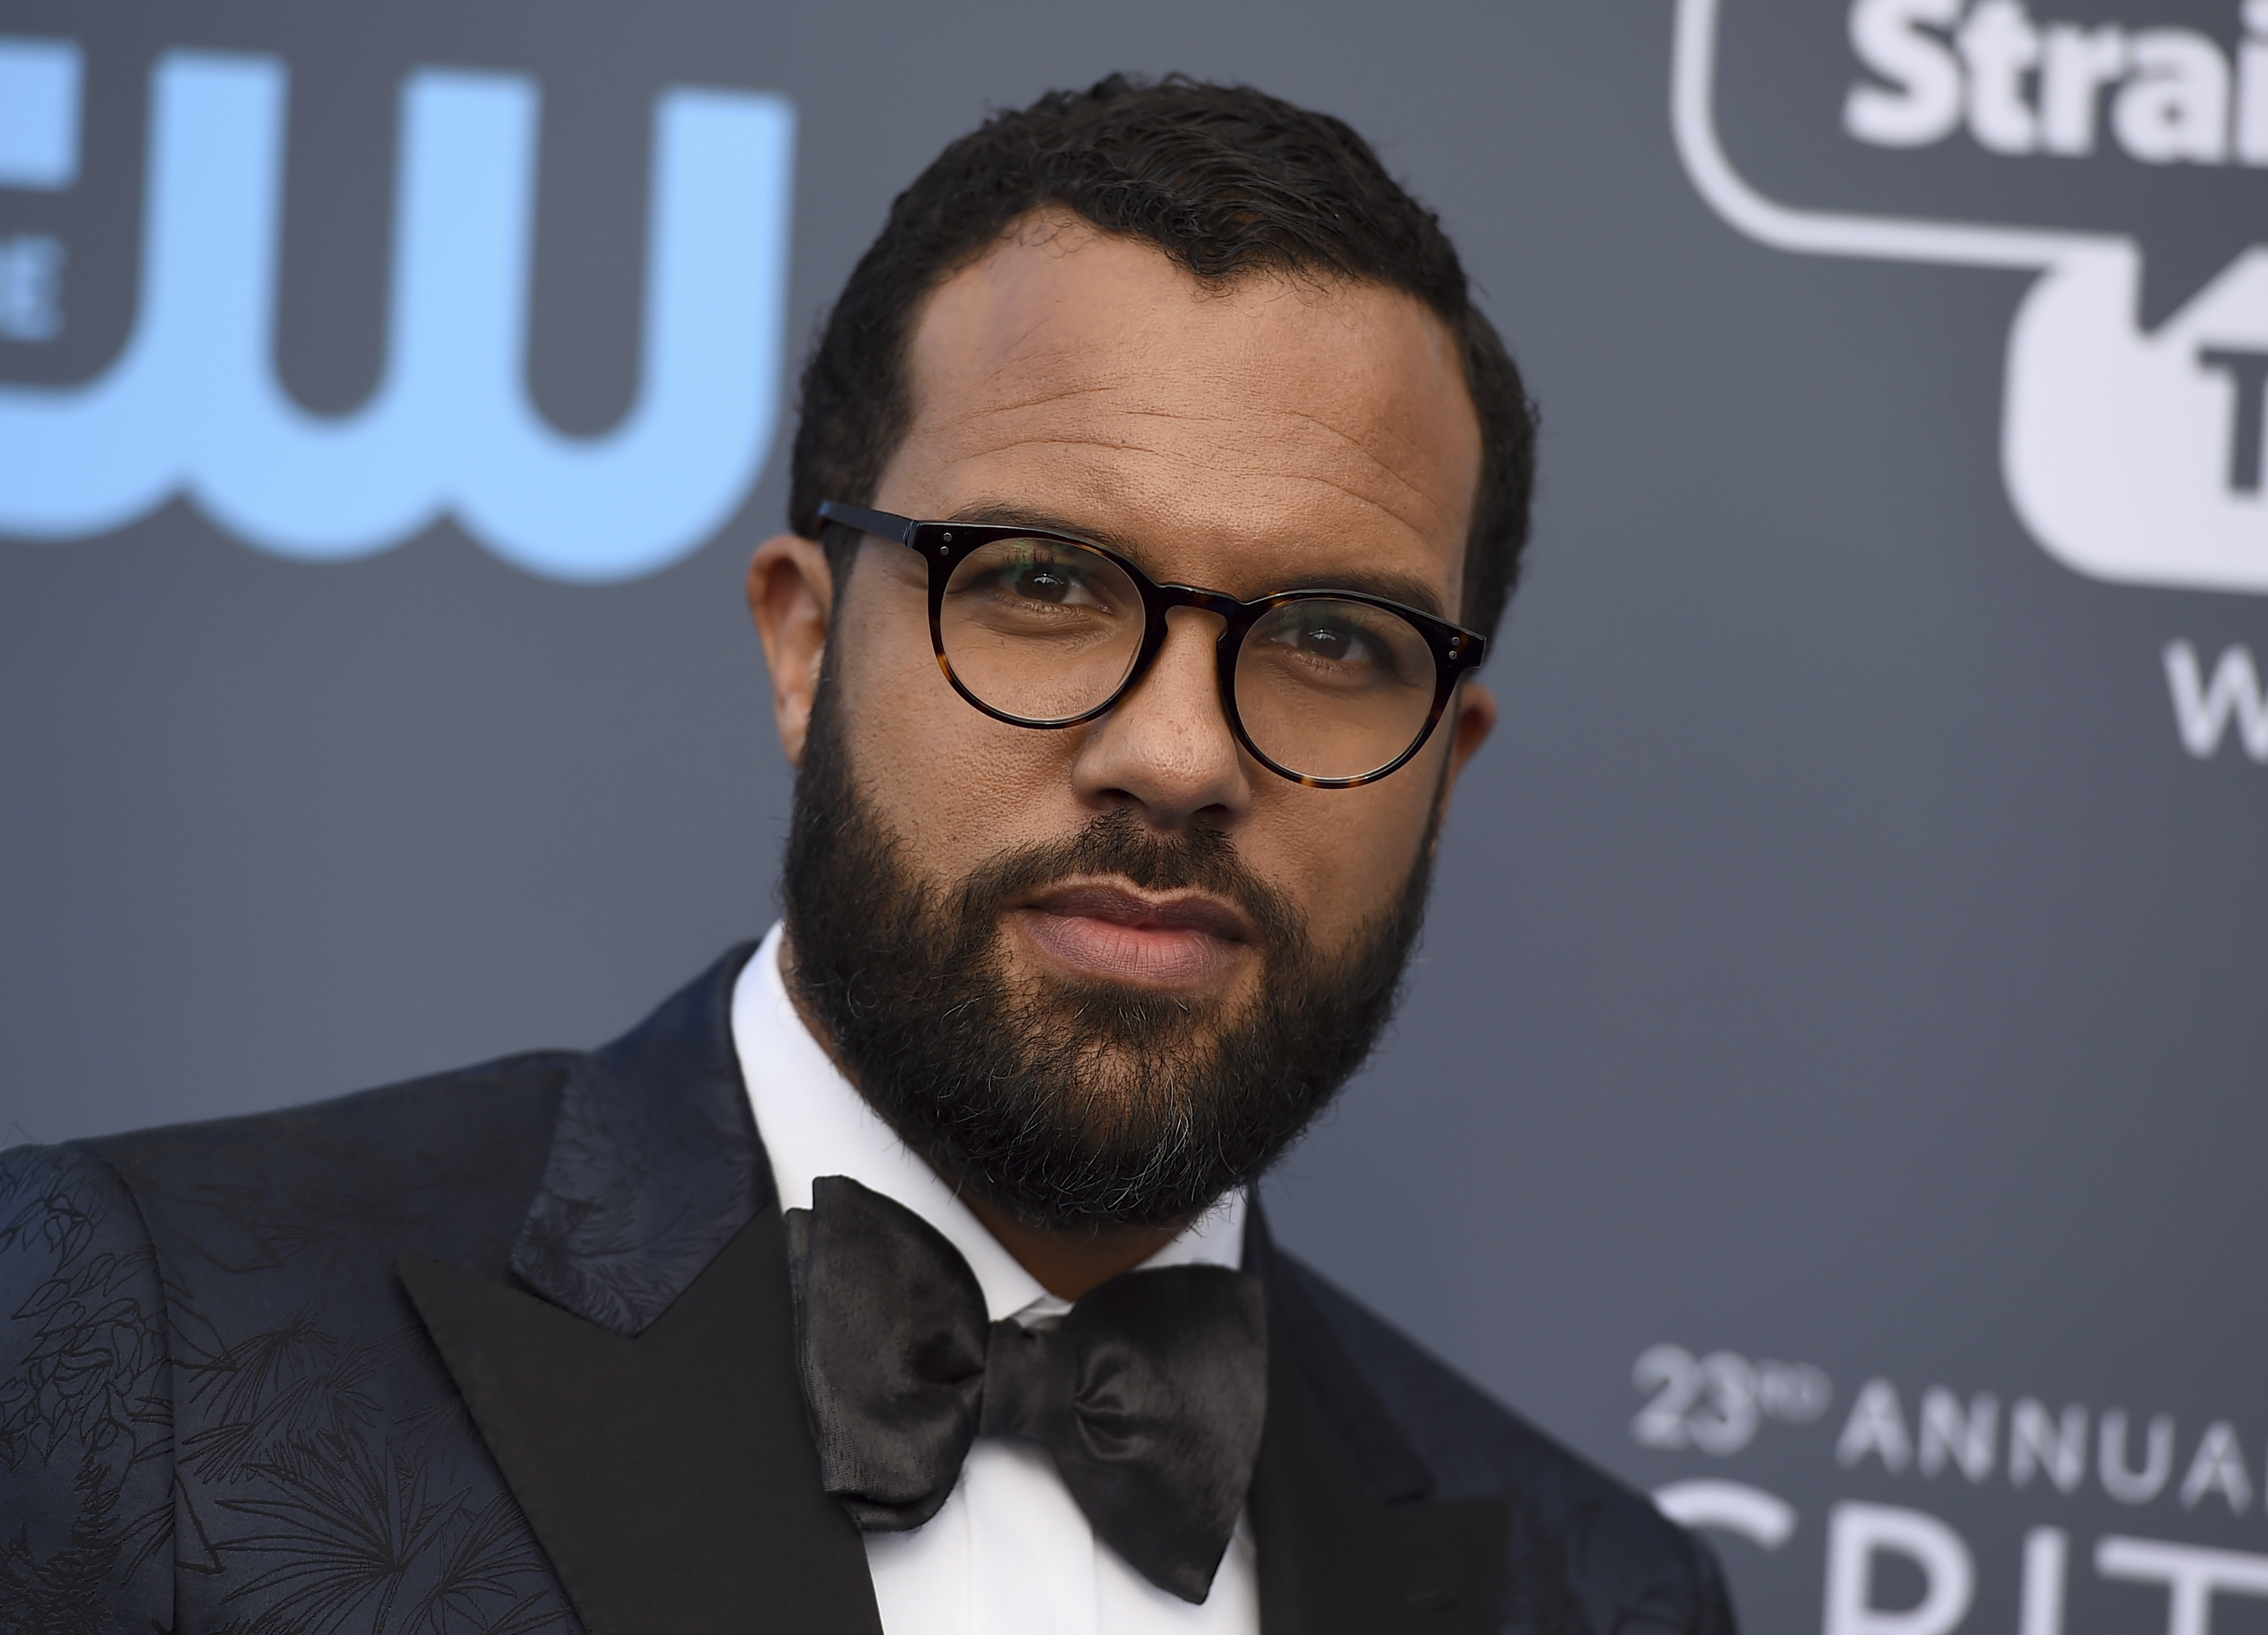 <div class='meta'><div class='origin-logo' data-origin='AP'></div><span class='caption-text' data-credit='Jordan Strauss/Invision/AP'>O-T Fagbenle arrives at the 23rd annual Critics' Choice Awards at the Barker Hangar on Thursday, Jan. 11, 2018, in Santa Monica, Calif.</span></div>